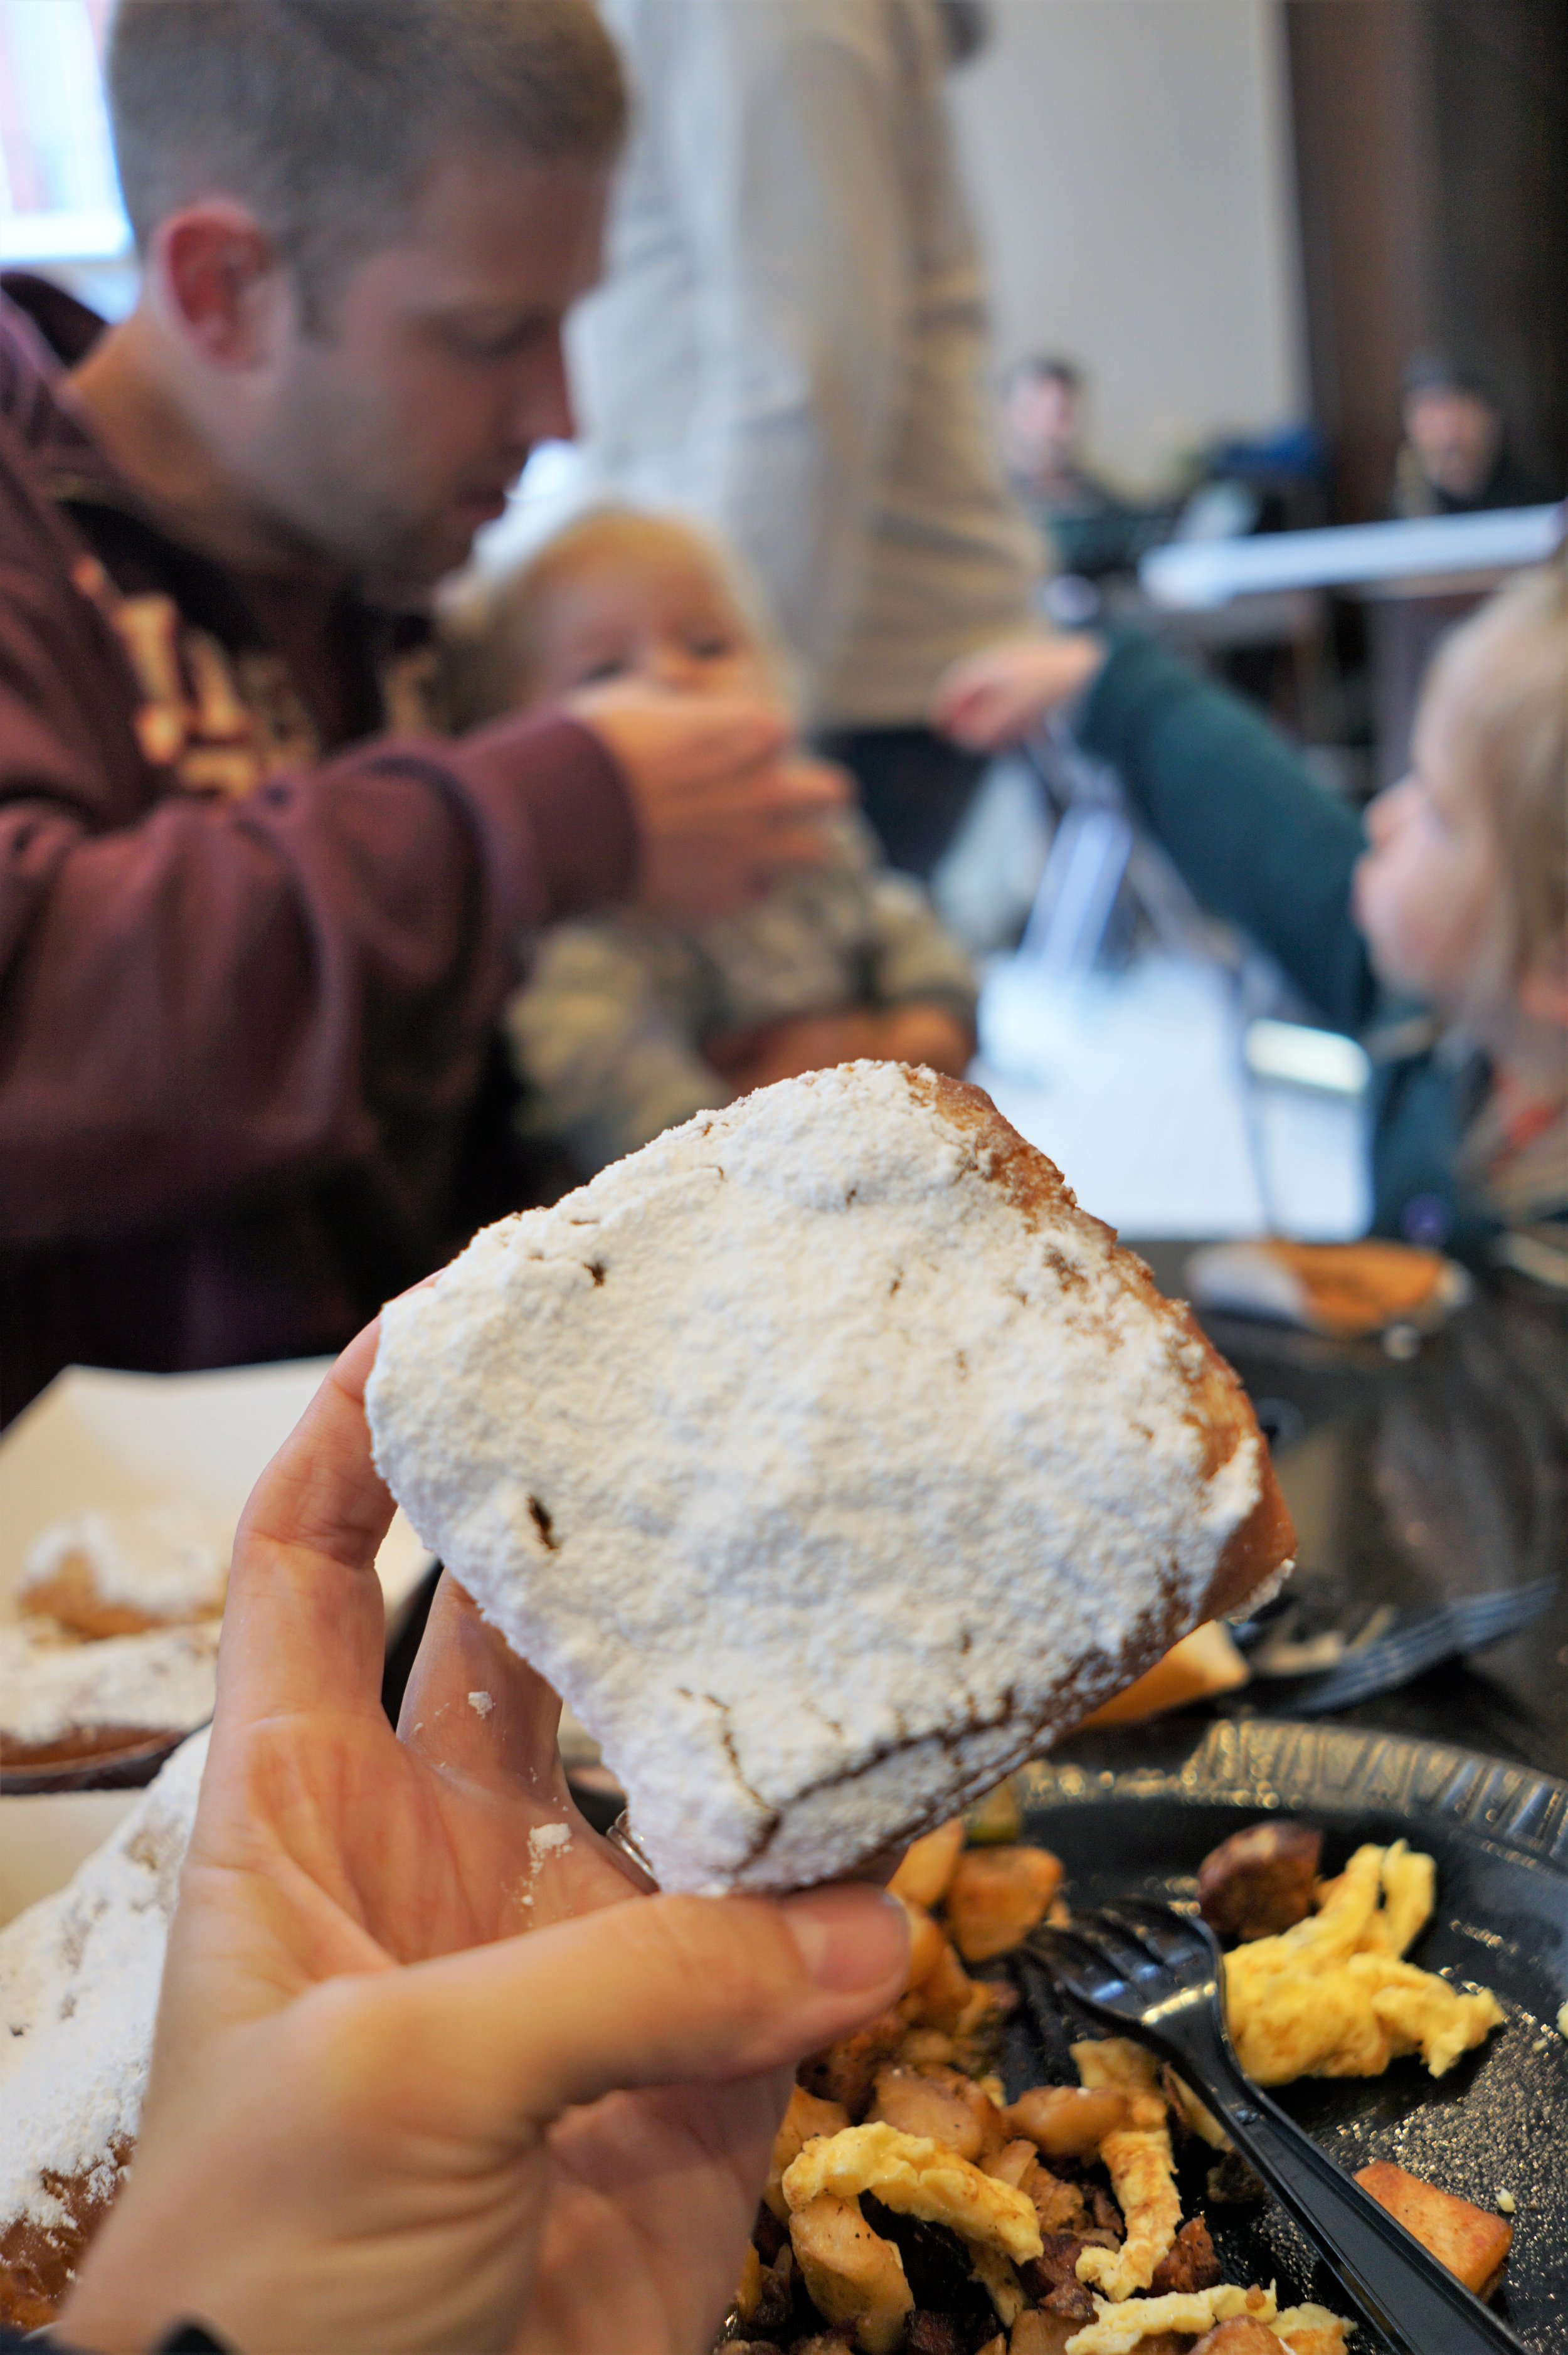 Everyone enjoying these giant beignets at Cafe Beignet!